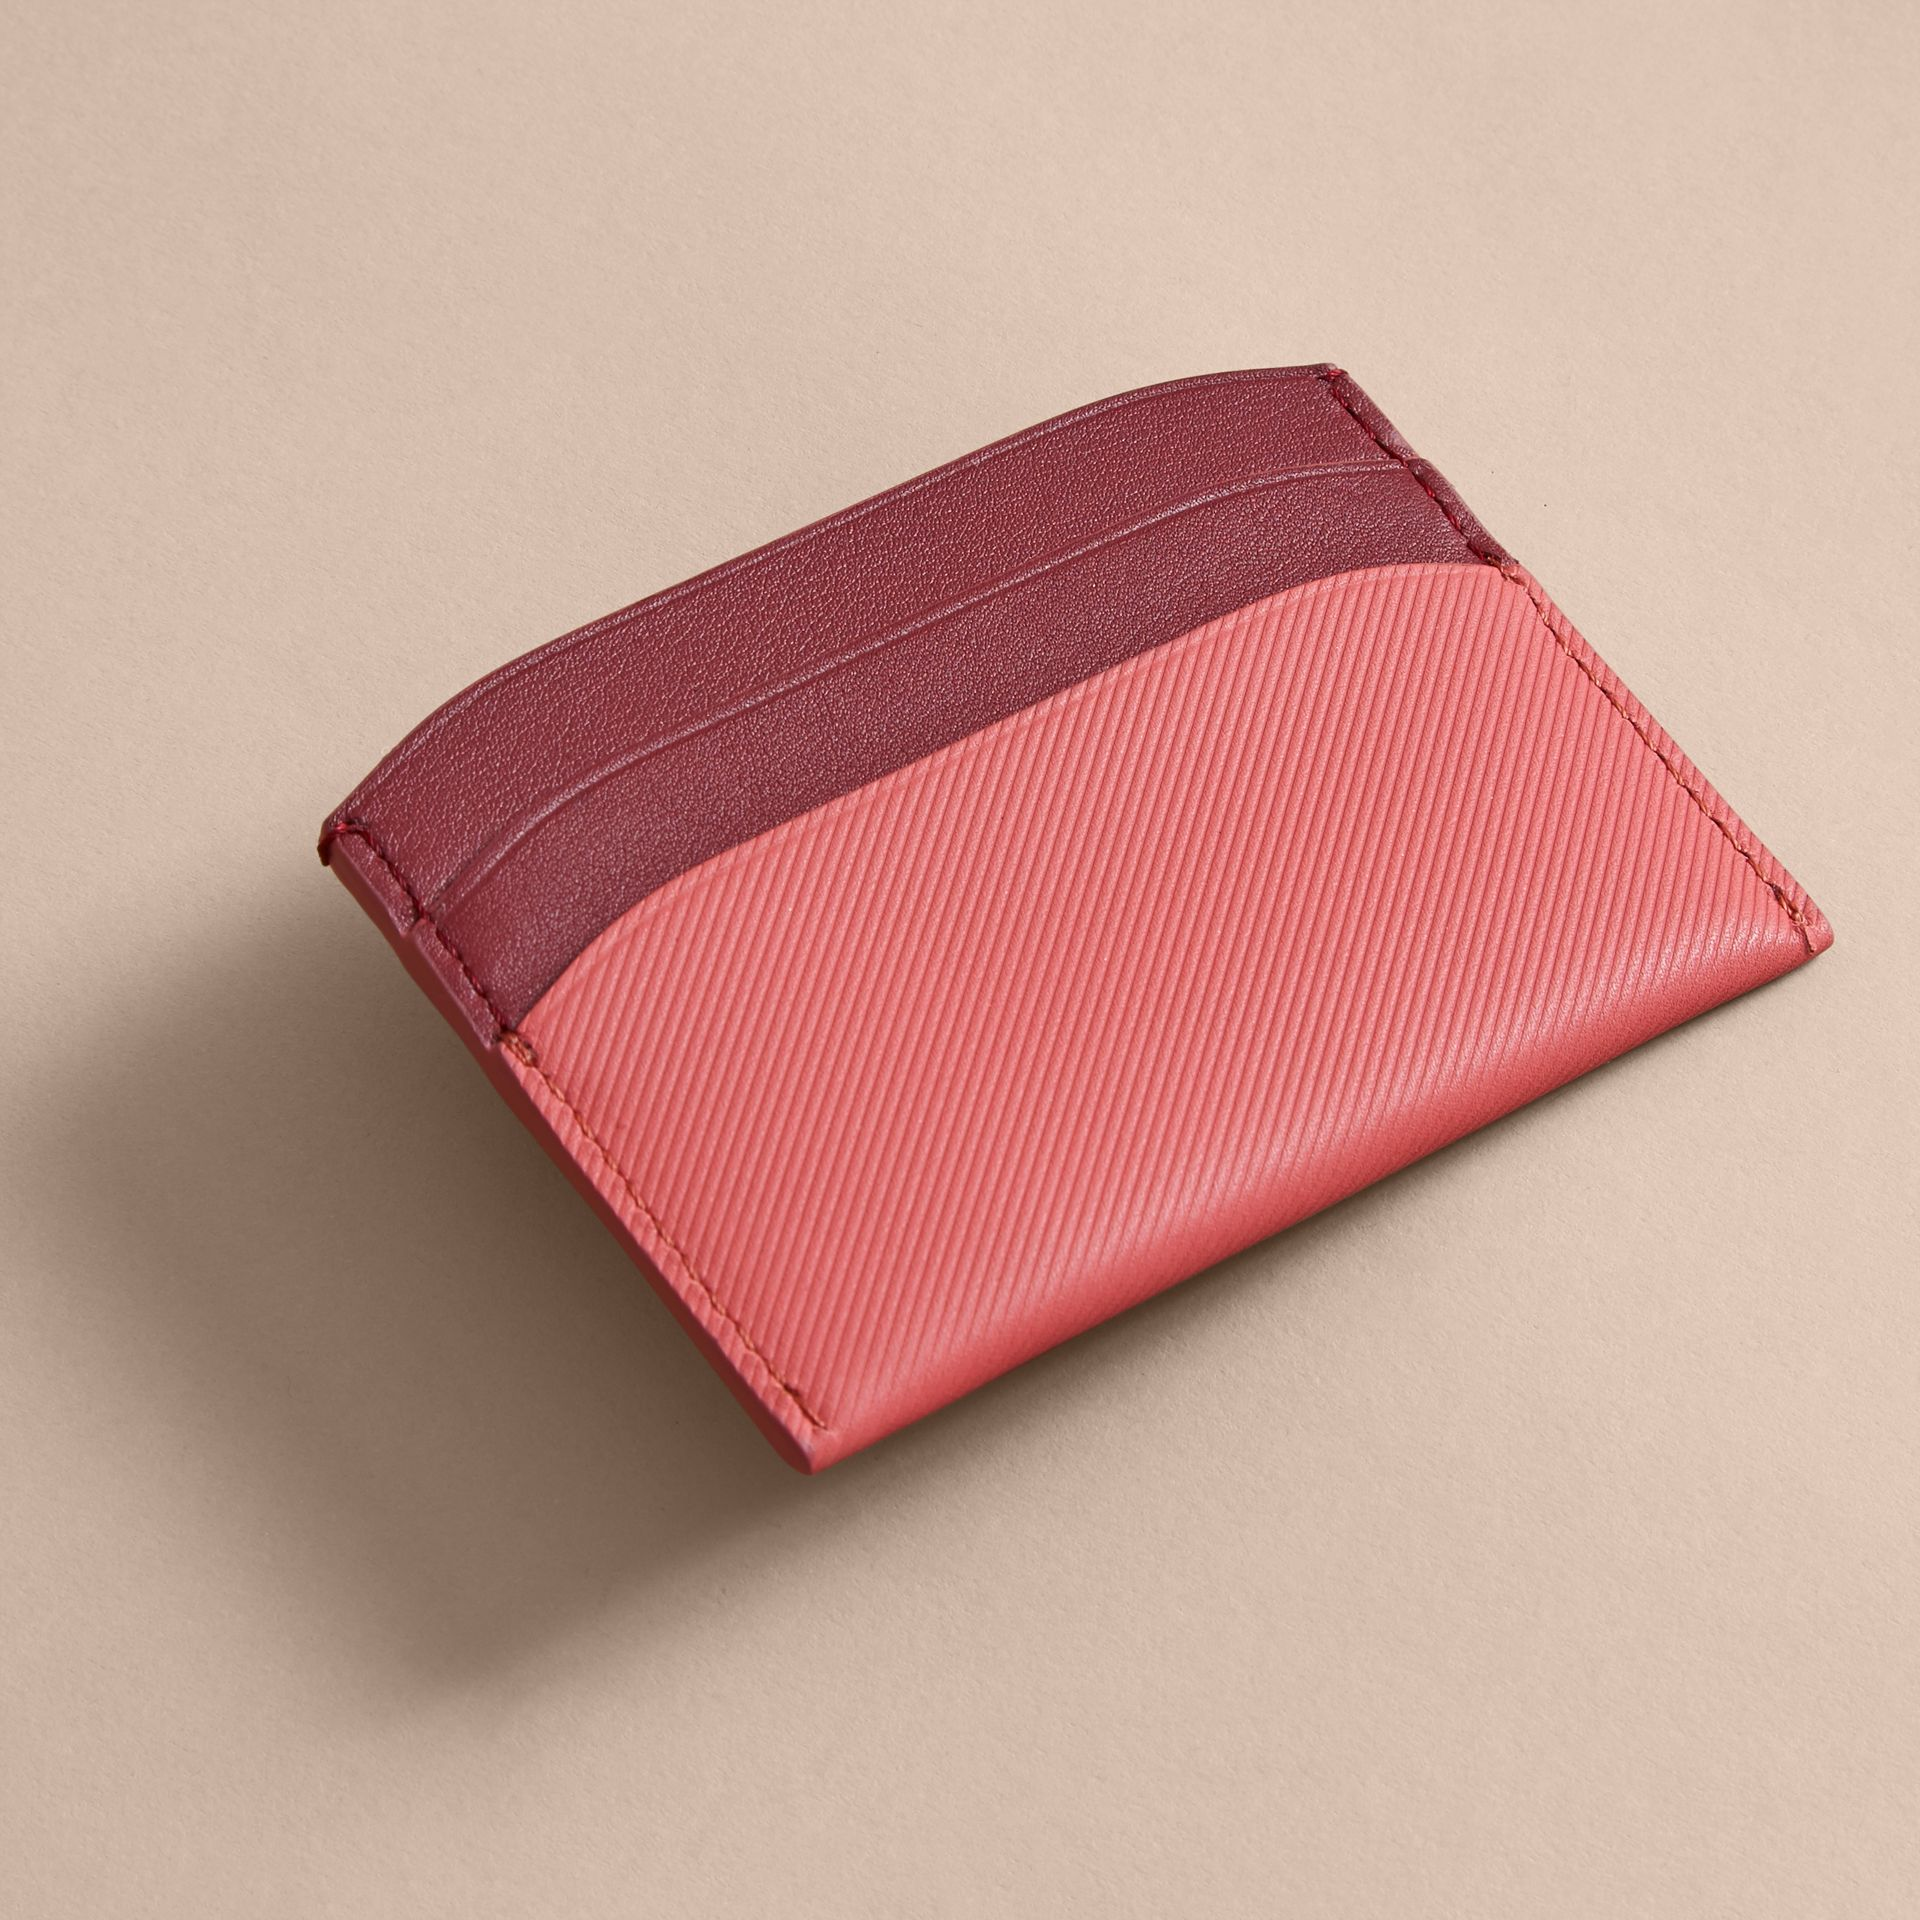 Two-tone Trench Leather Card Case in Blossom Pink/ Antique Red - Women | Burberry - gallery image 2